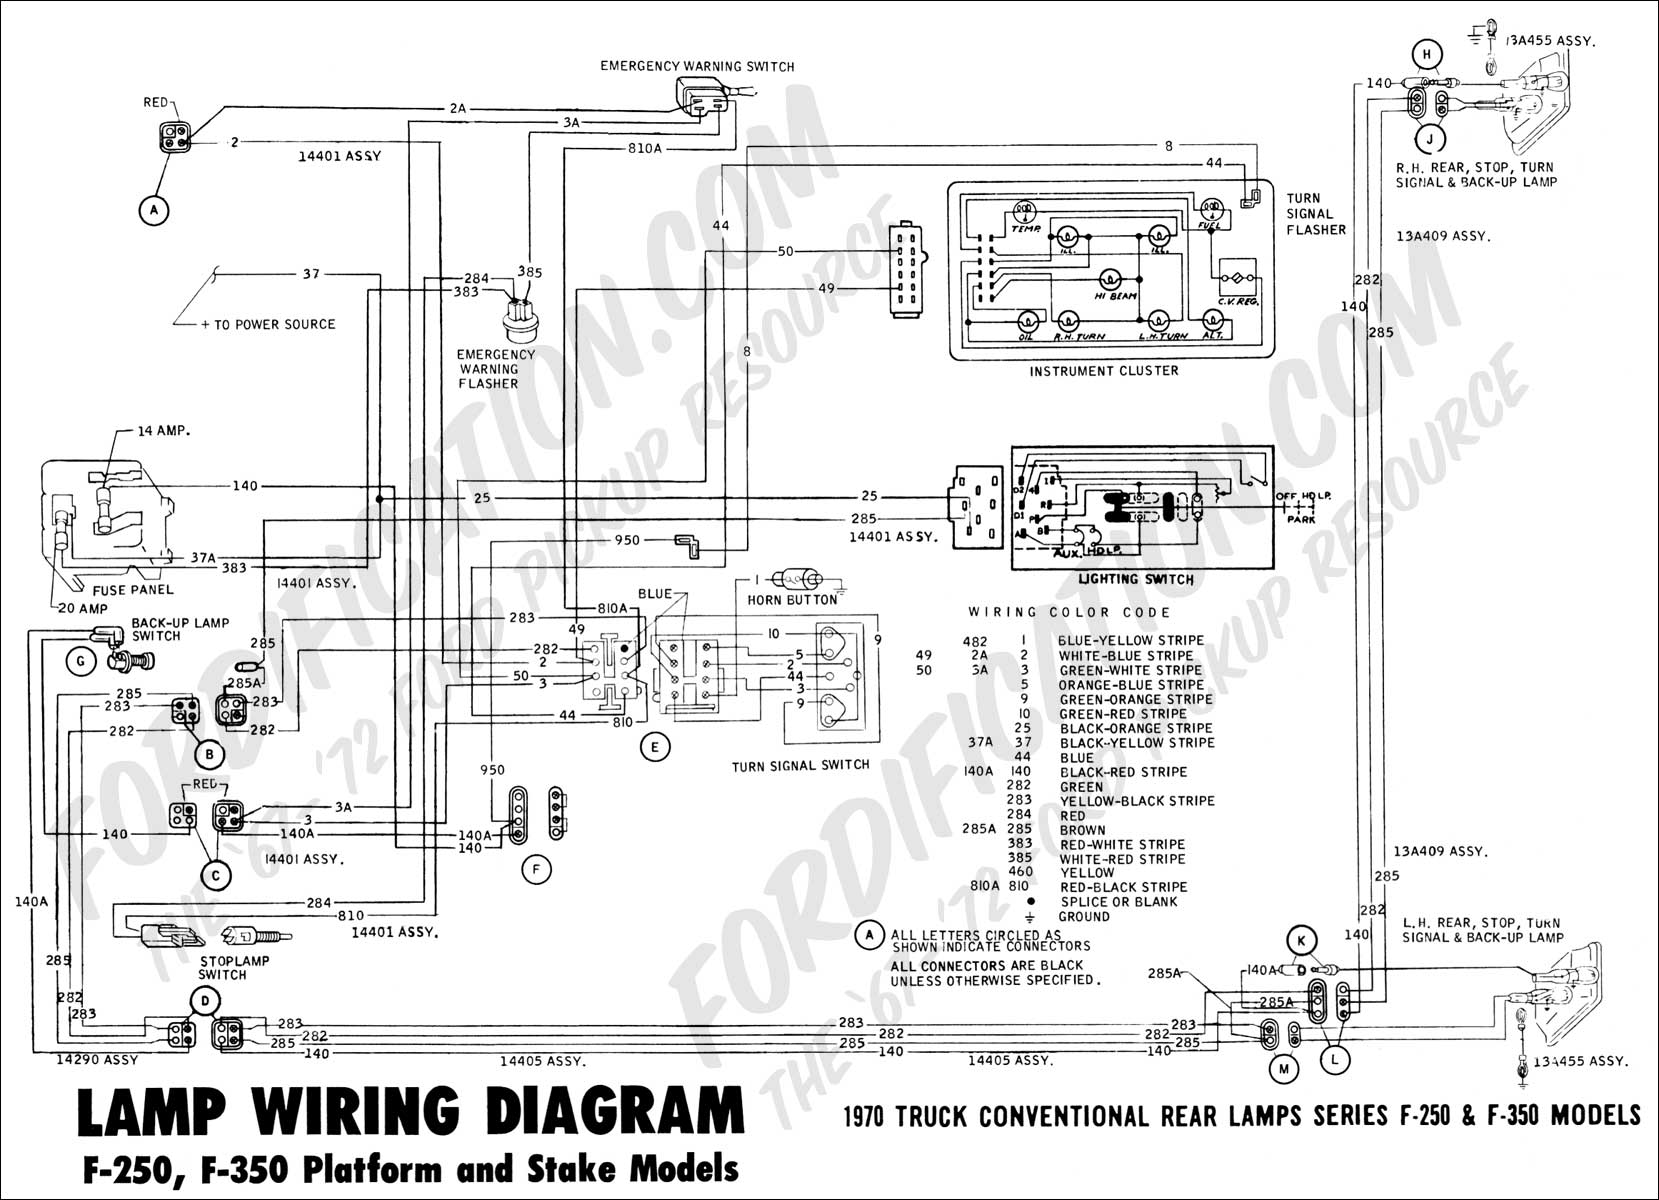 hight resolution of f150 backup light wiring diagram wiring diagram 2006 ford f 250 backup light wiring diagram my